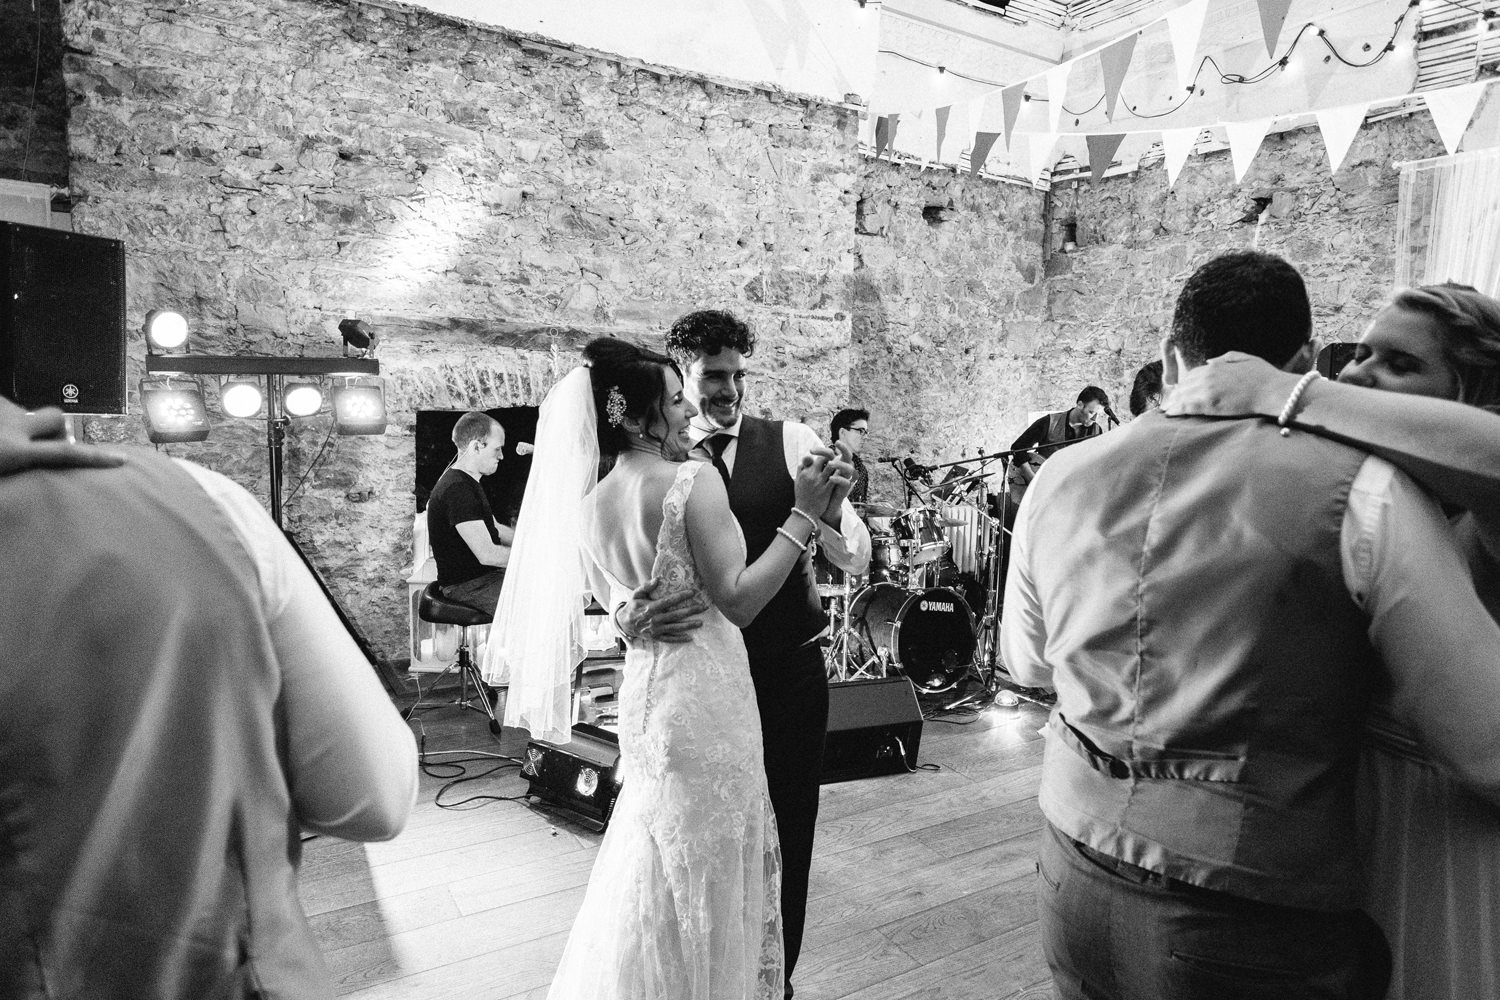 wedding dances at cloughjordan david mcclelland photography